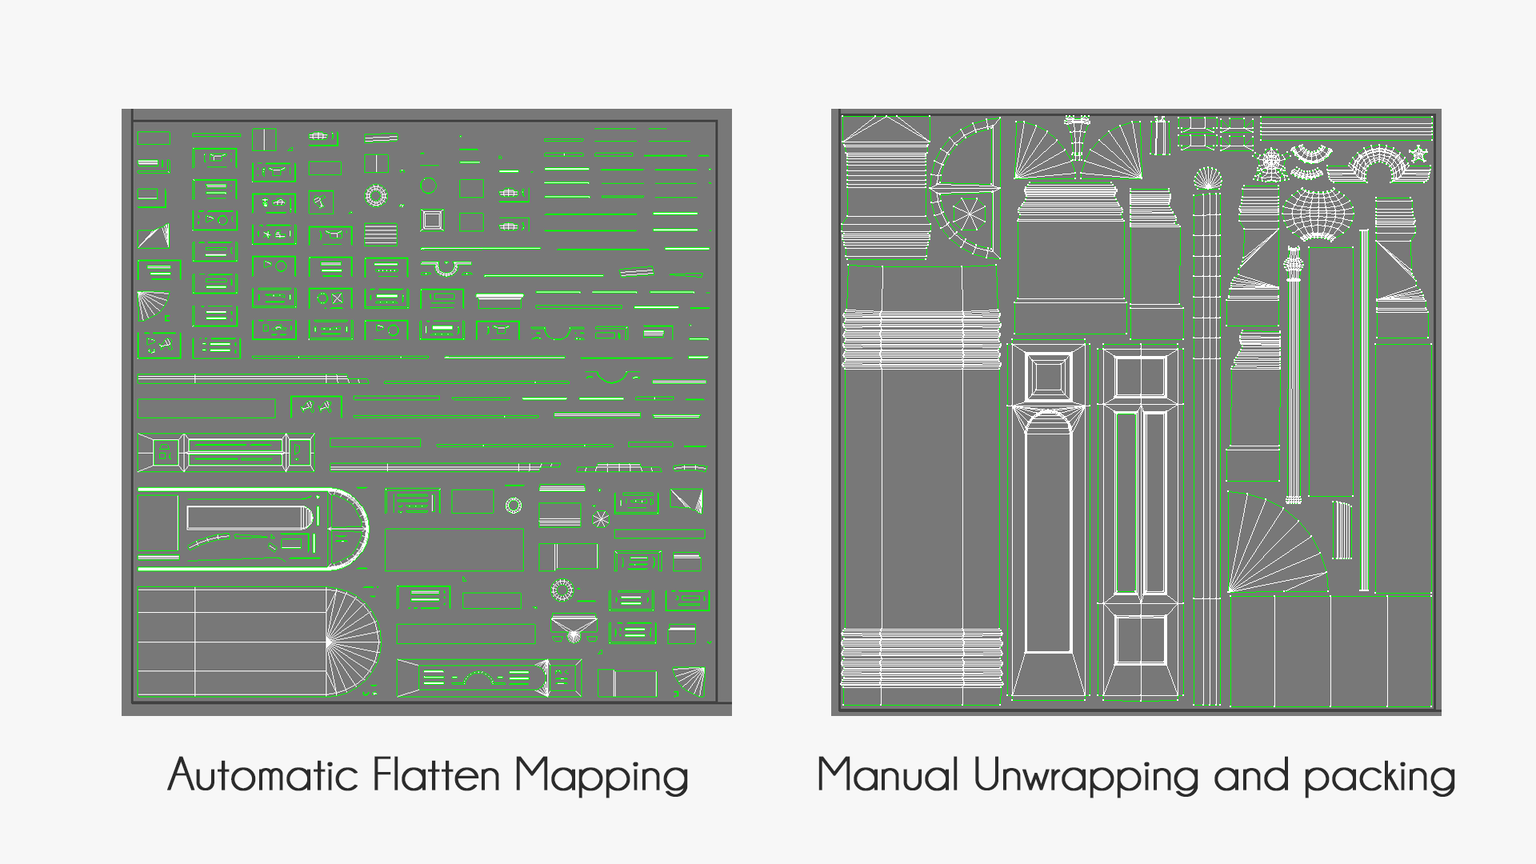 Automatic Flatten Mapping vs. Manual Unwrapping and Packing